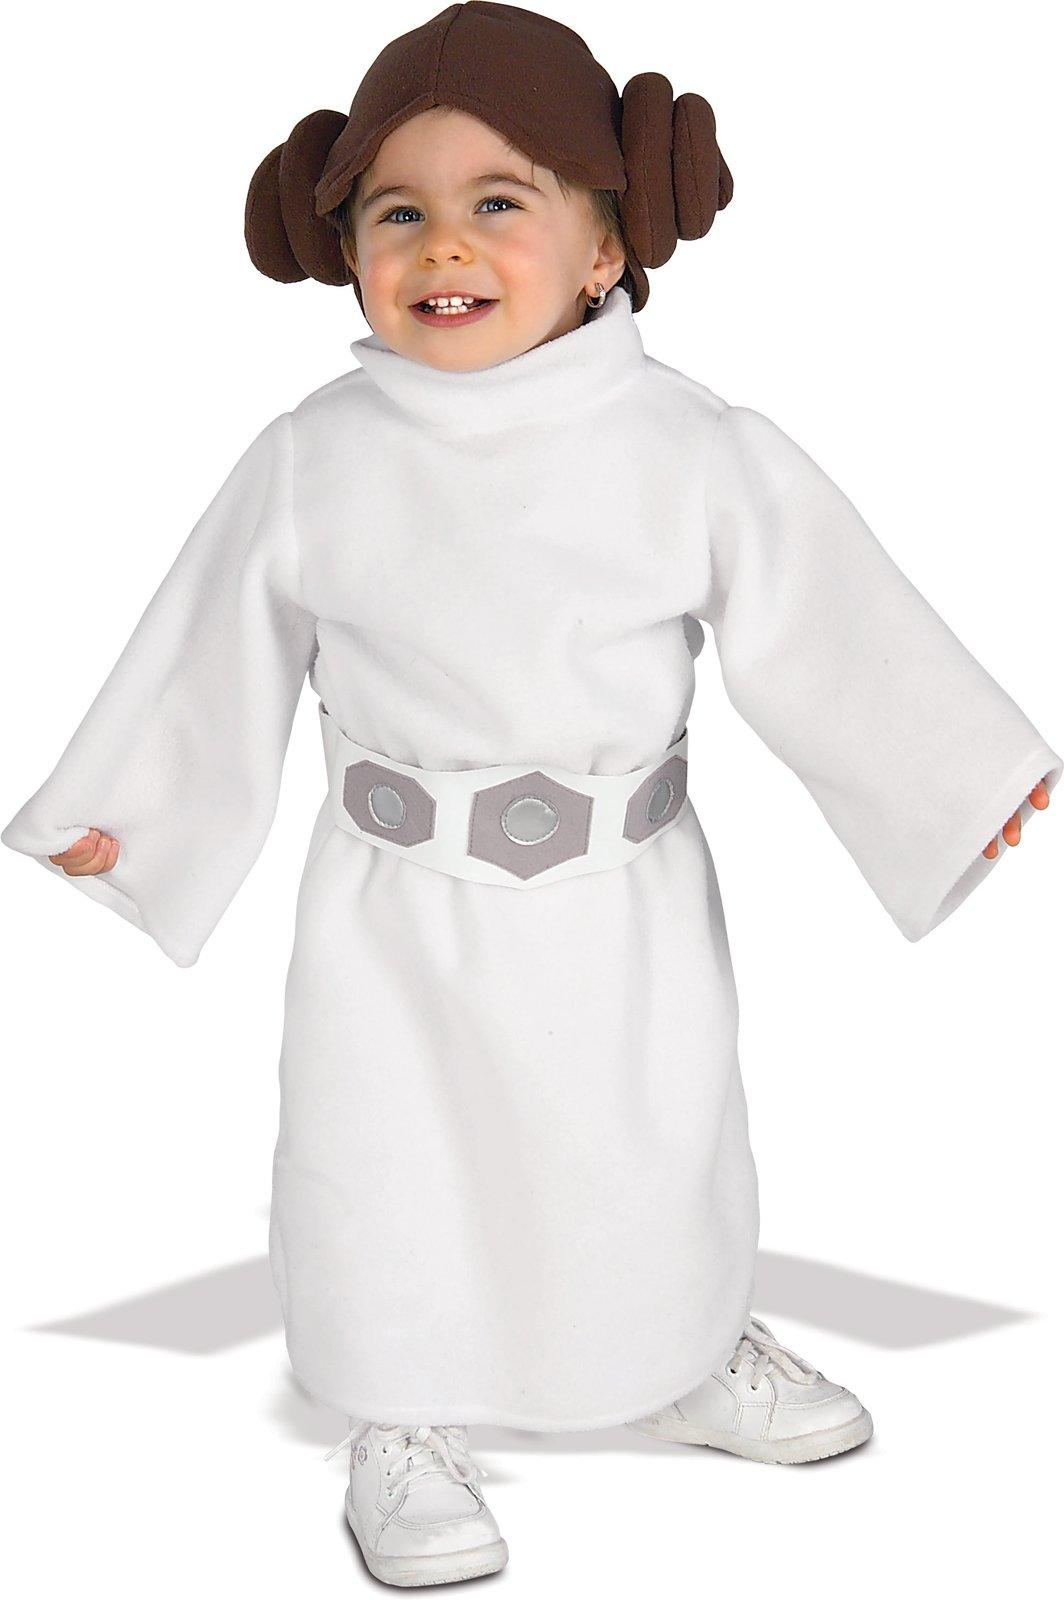 Star Wars Princess Leia Fleece Infant / Toddler Costume